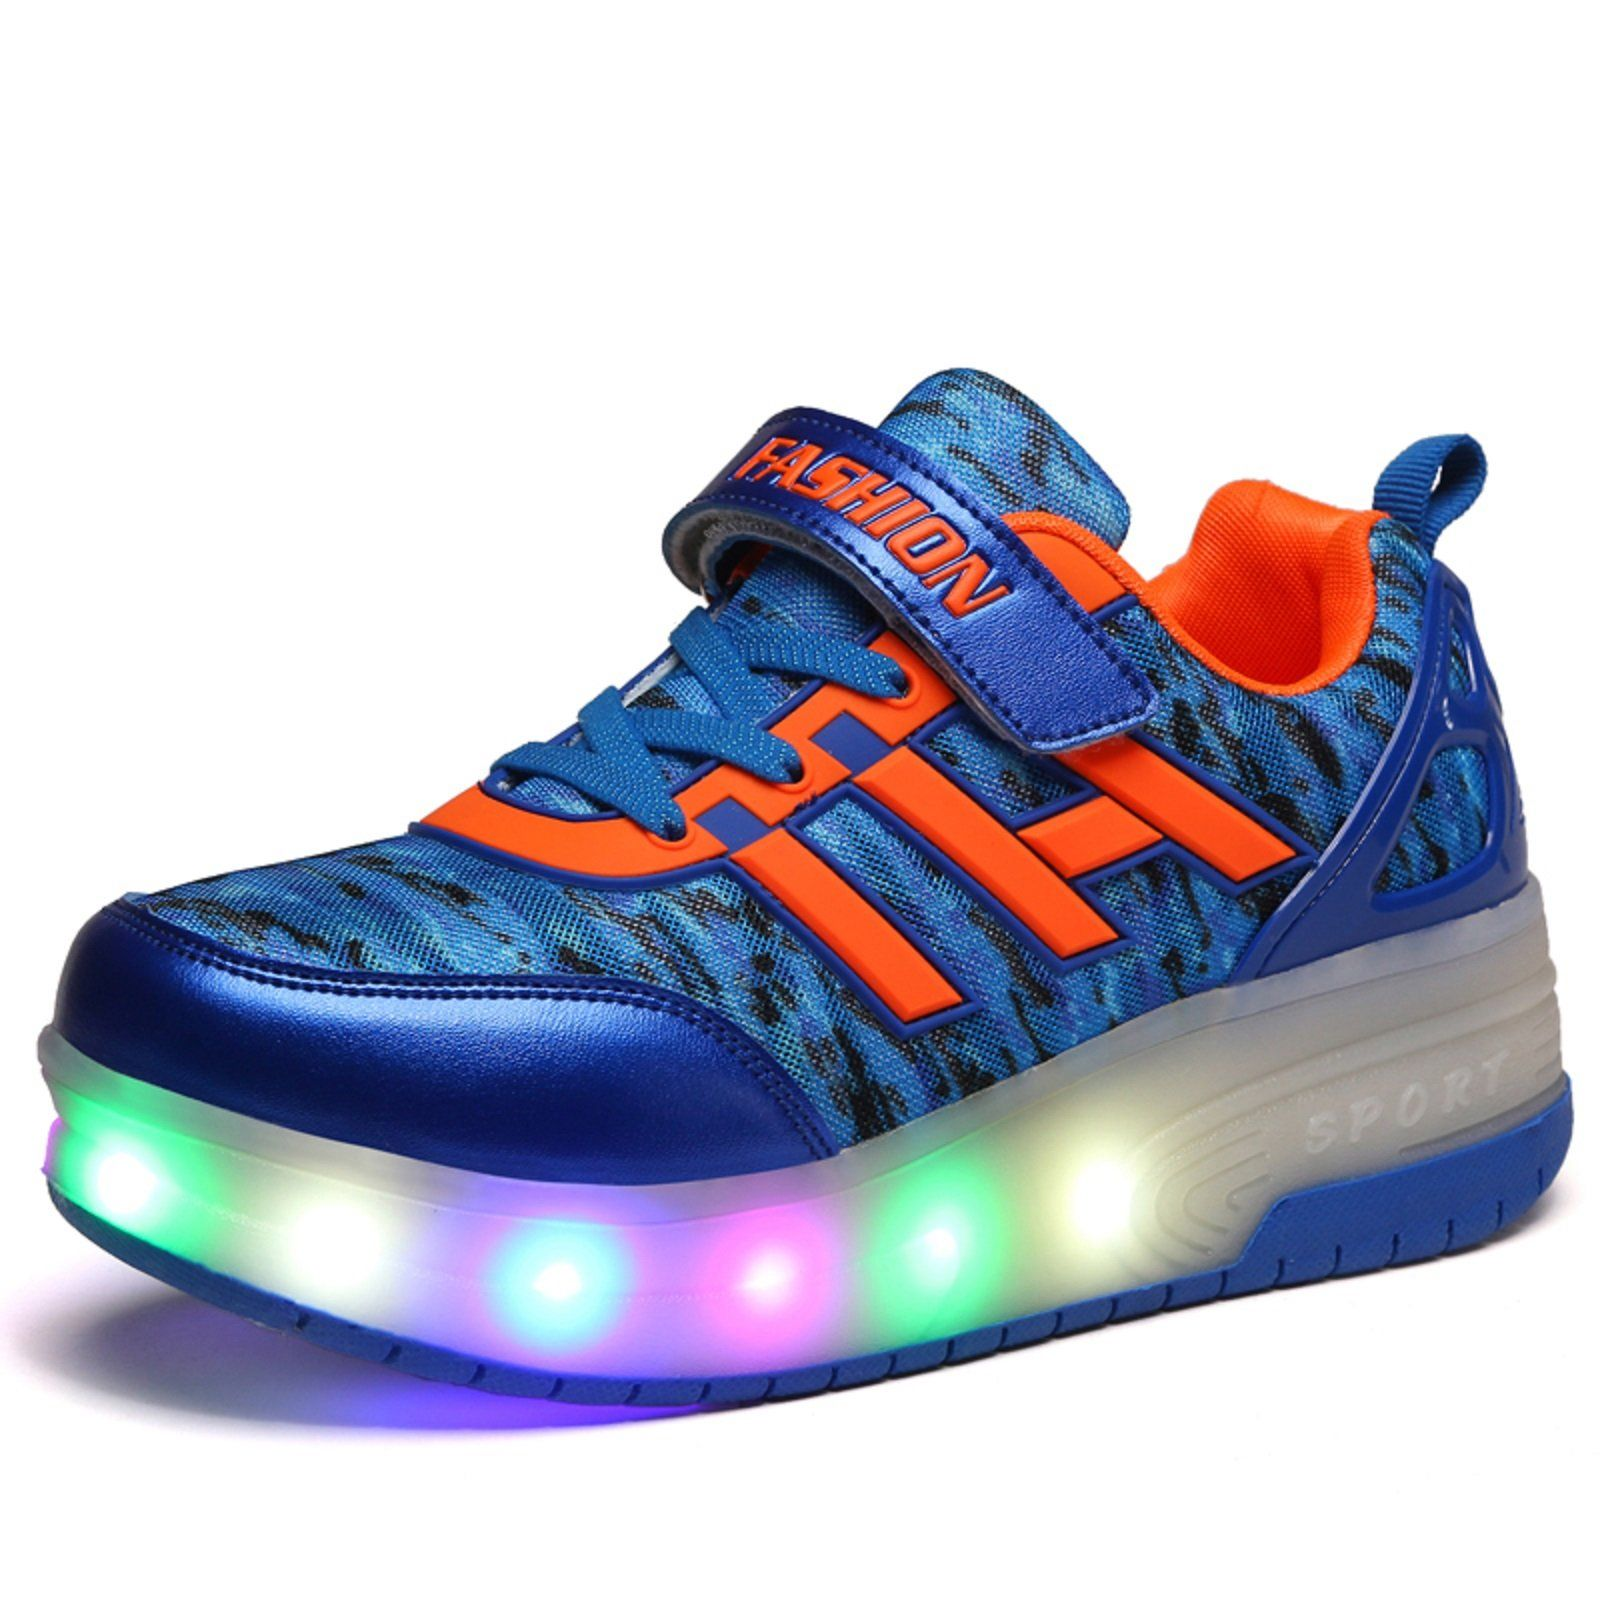 Lafreddy double wheels blink skate shoe 34 blue extremely cool led roller